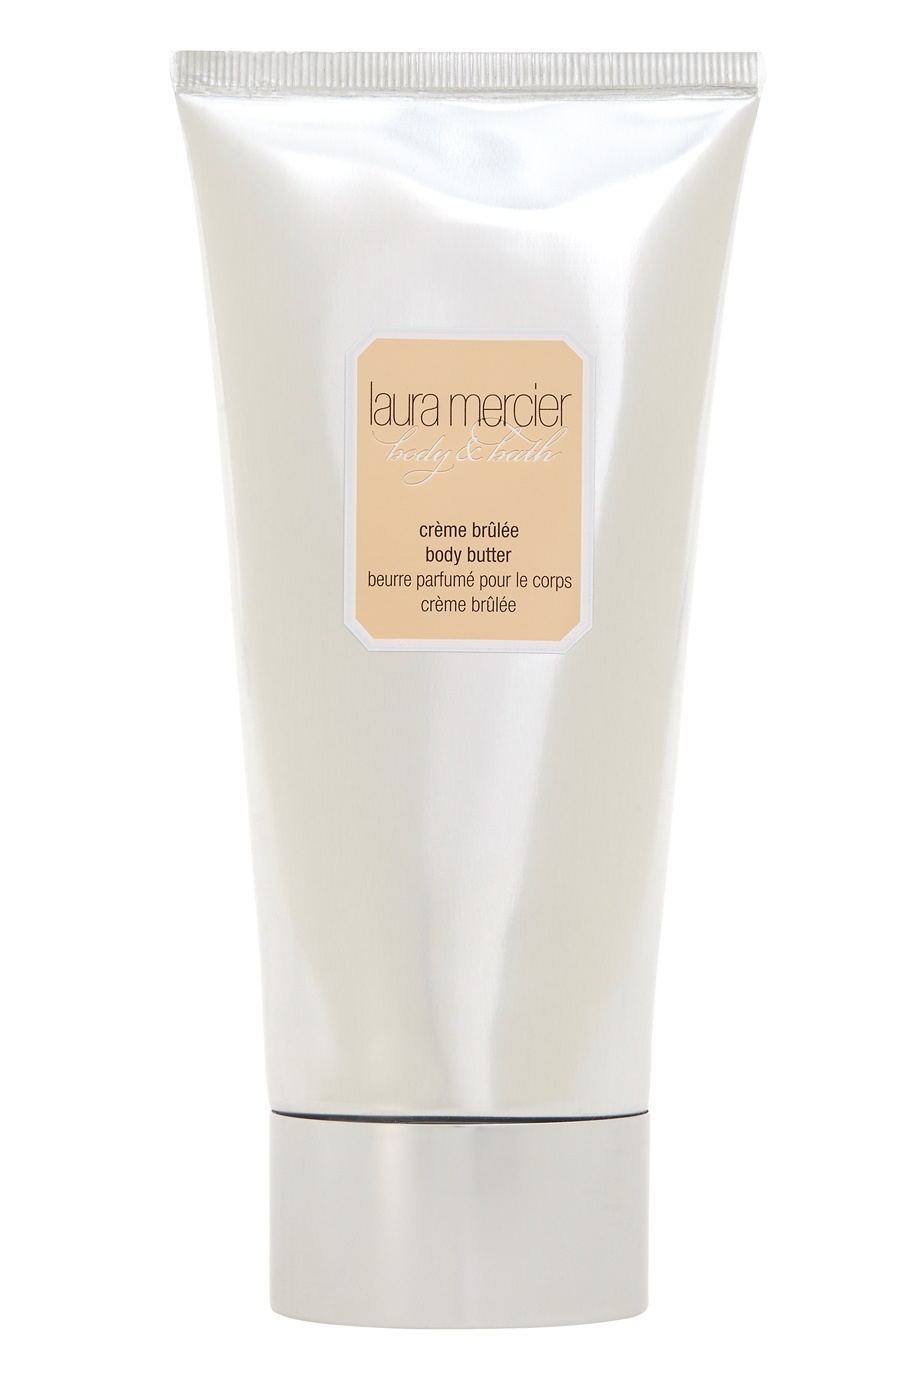 Крем для тела Creme Brulee Body Butter 170ml Laura Mercier (фото)